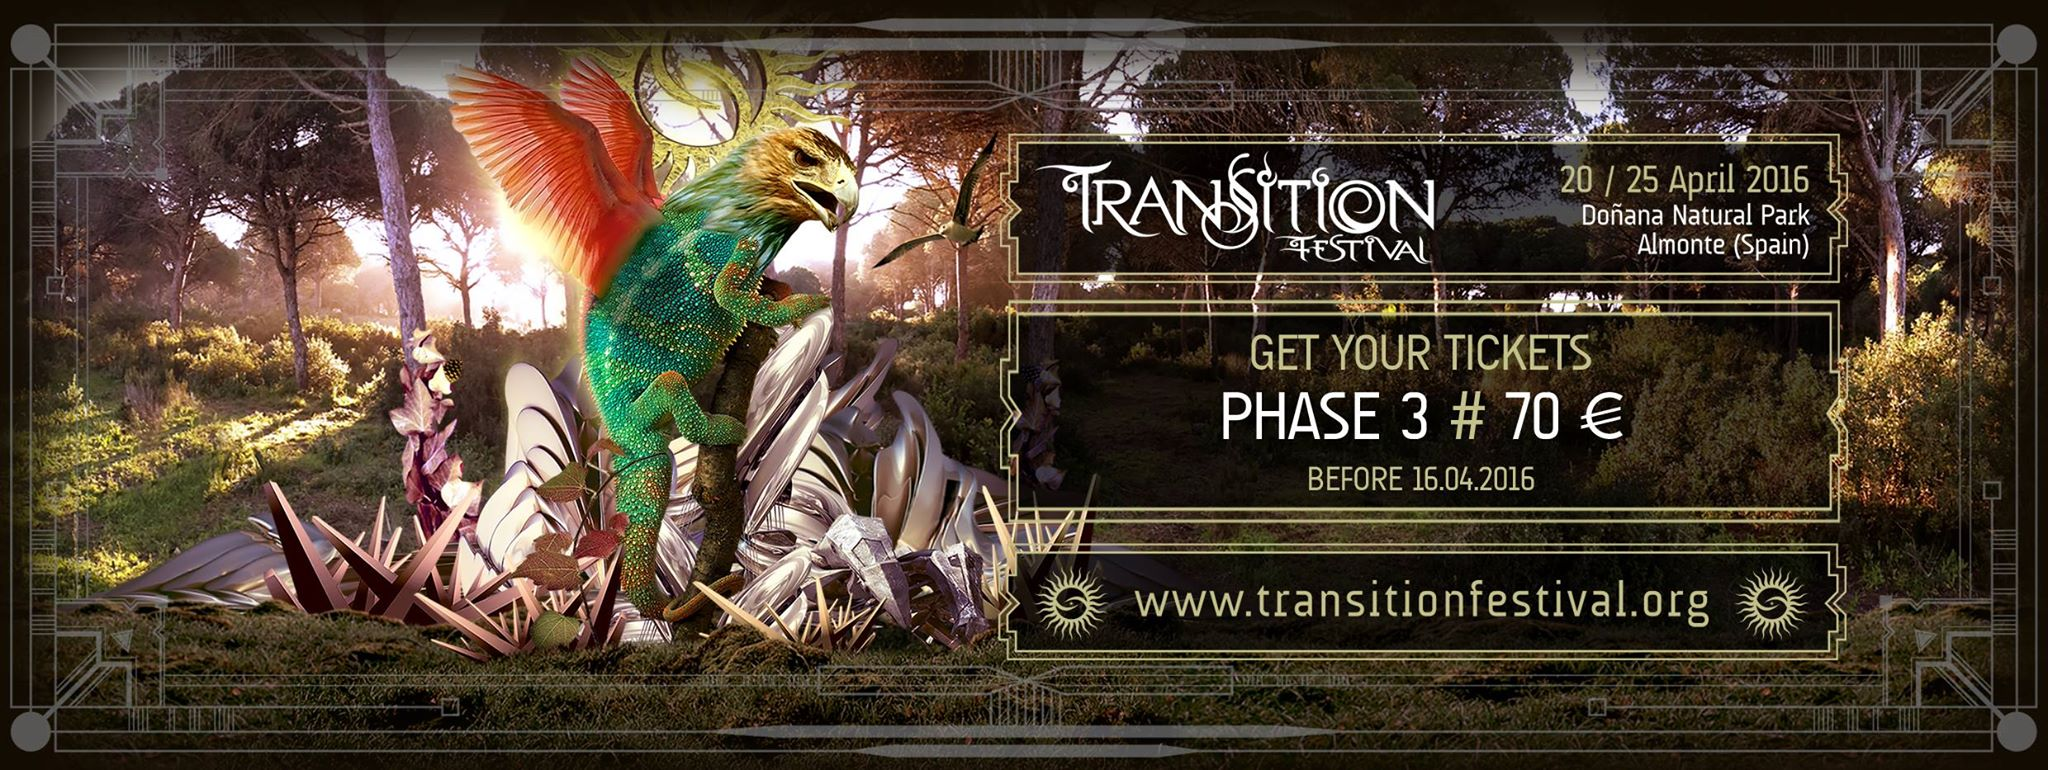 for more info on transition festival in Spain :  https://www.facebook.com/TransitionFestival/  &  http://www.transitionfestival.org/index.php/en/